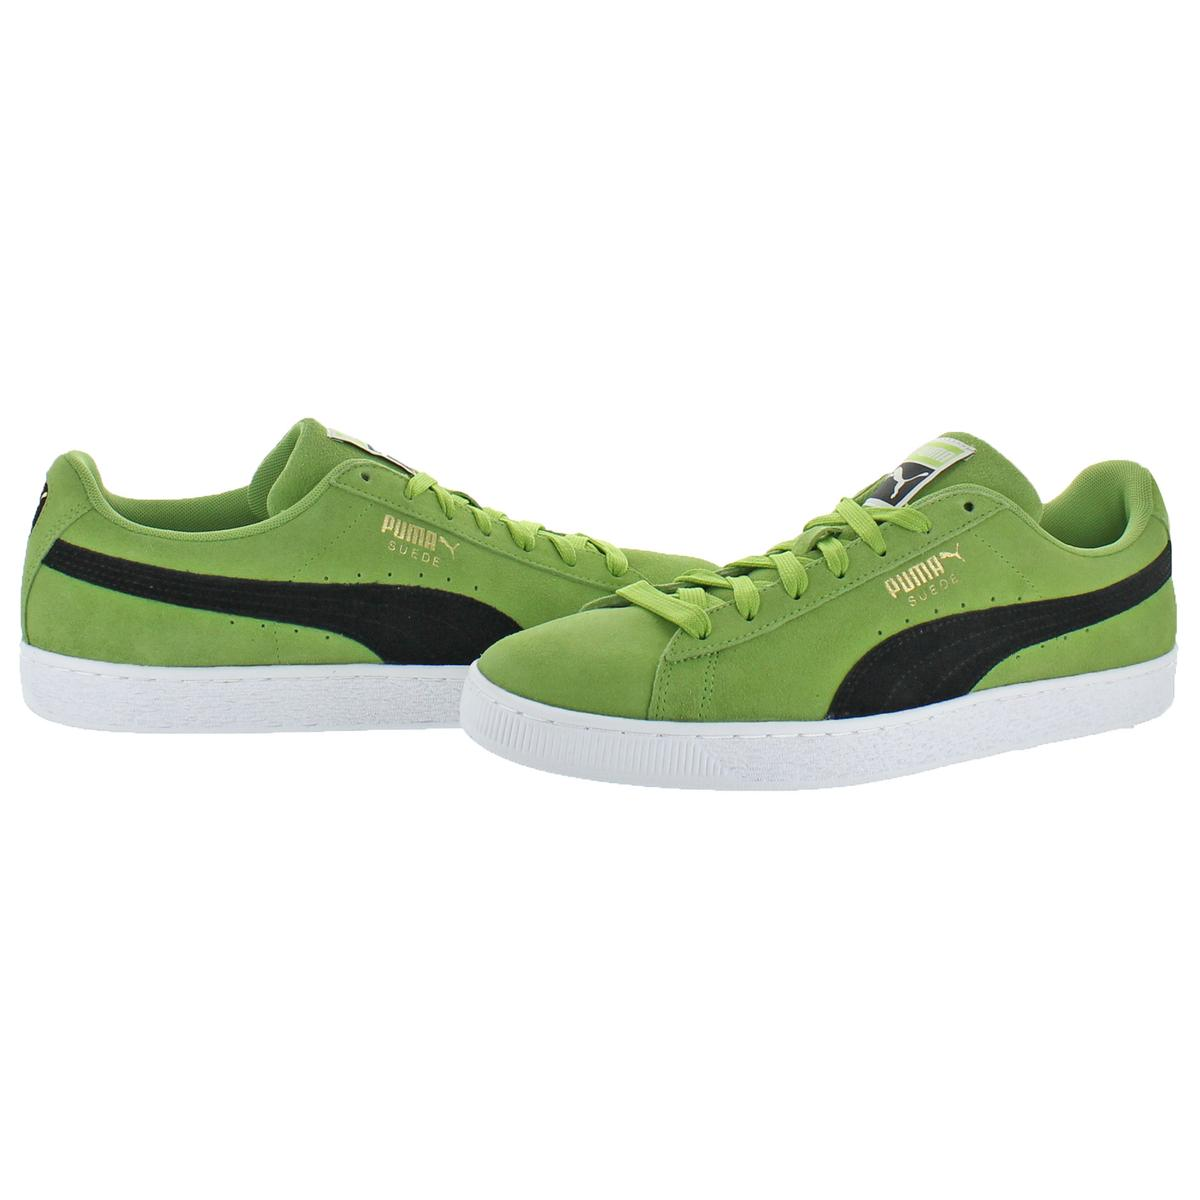 Puma-Suede-Classic-Men-039-s-Fashion-Sneakers-Shoes thumbnail 18